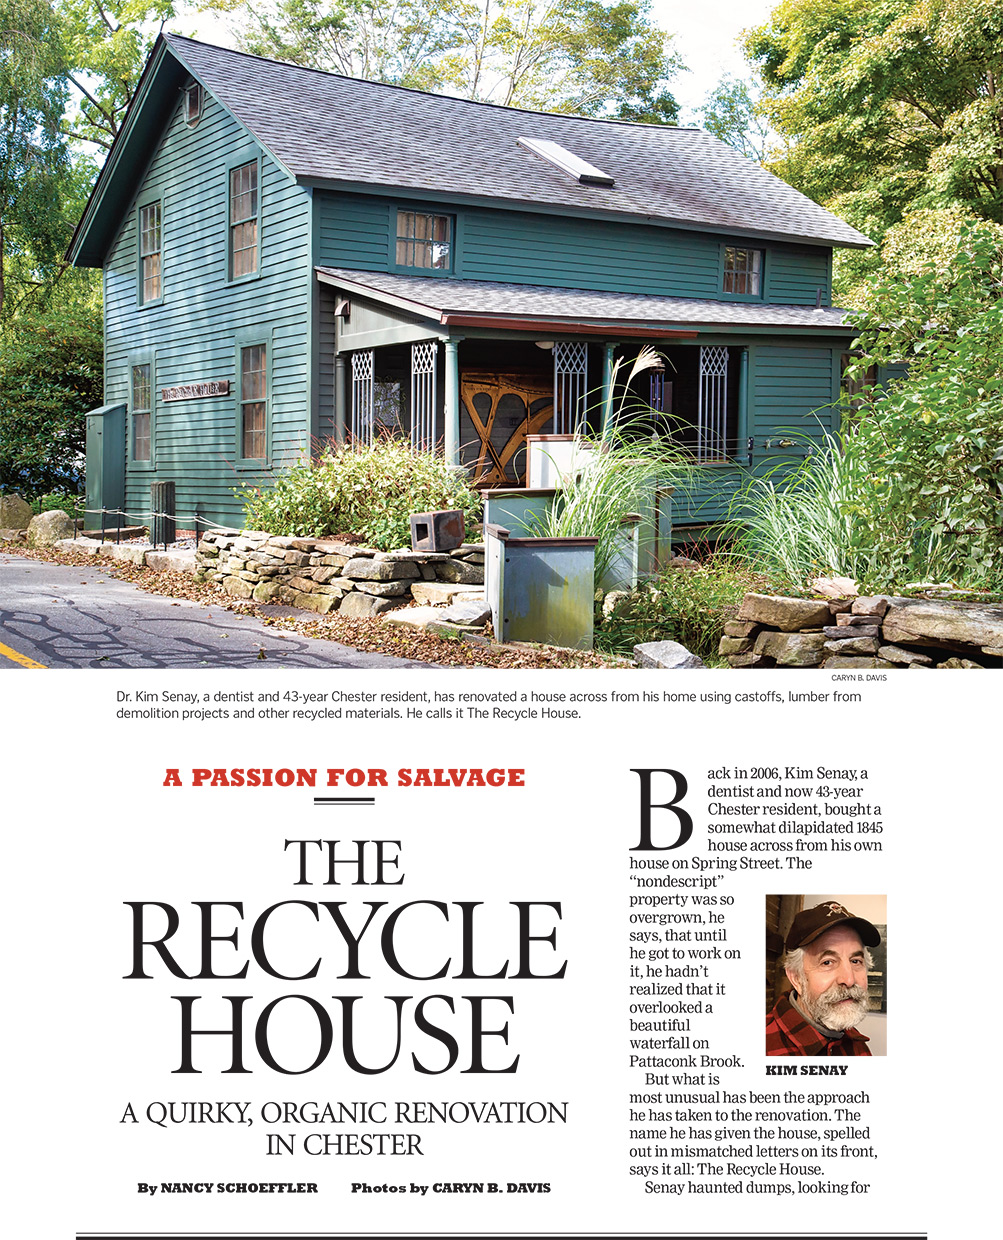 Recycle-House-Kim-Senay-Caryn-B-Davis-Nancy-Schoeffler